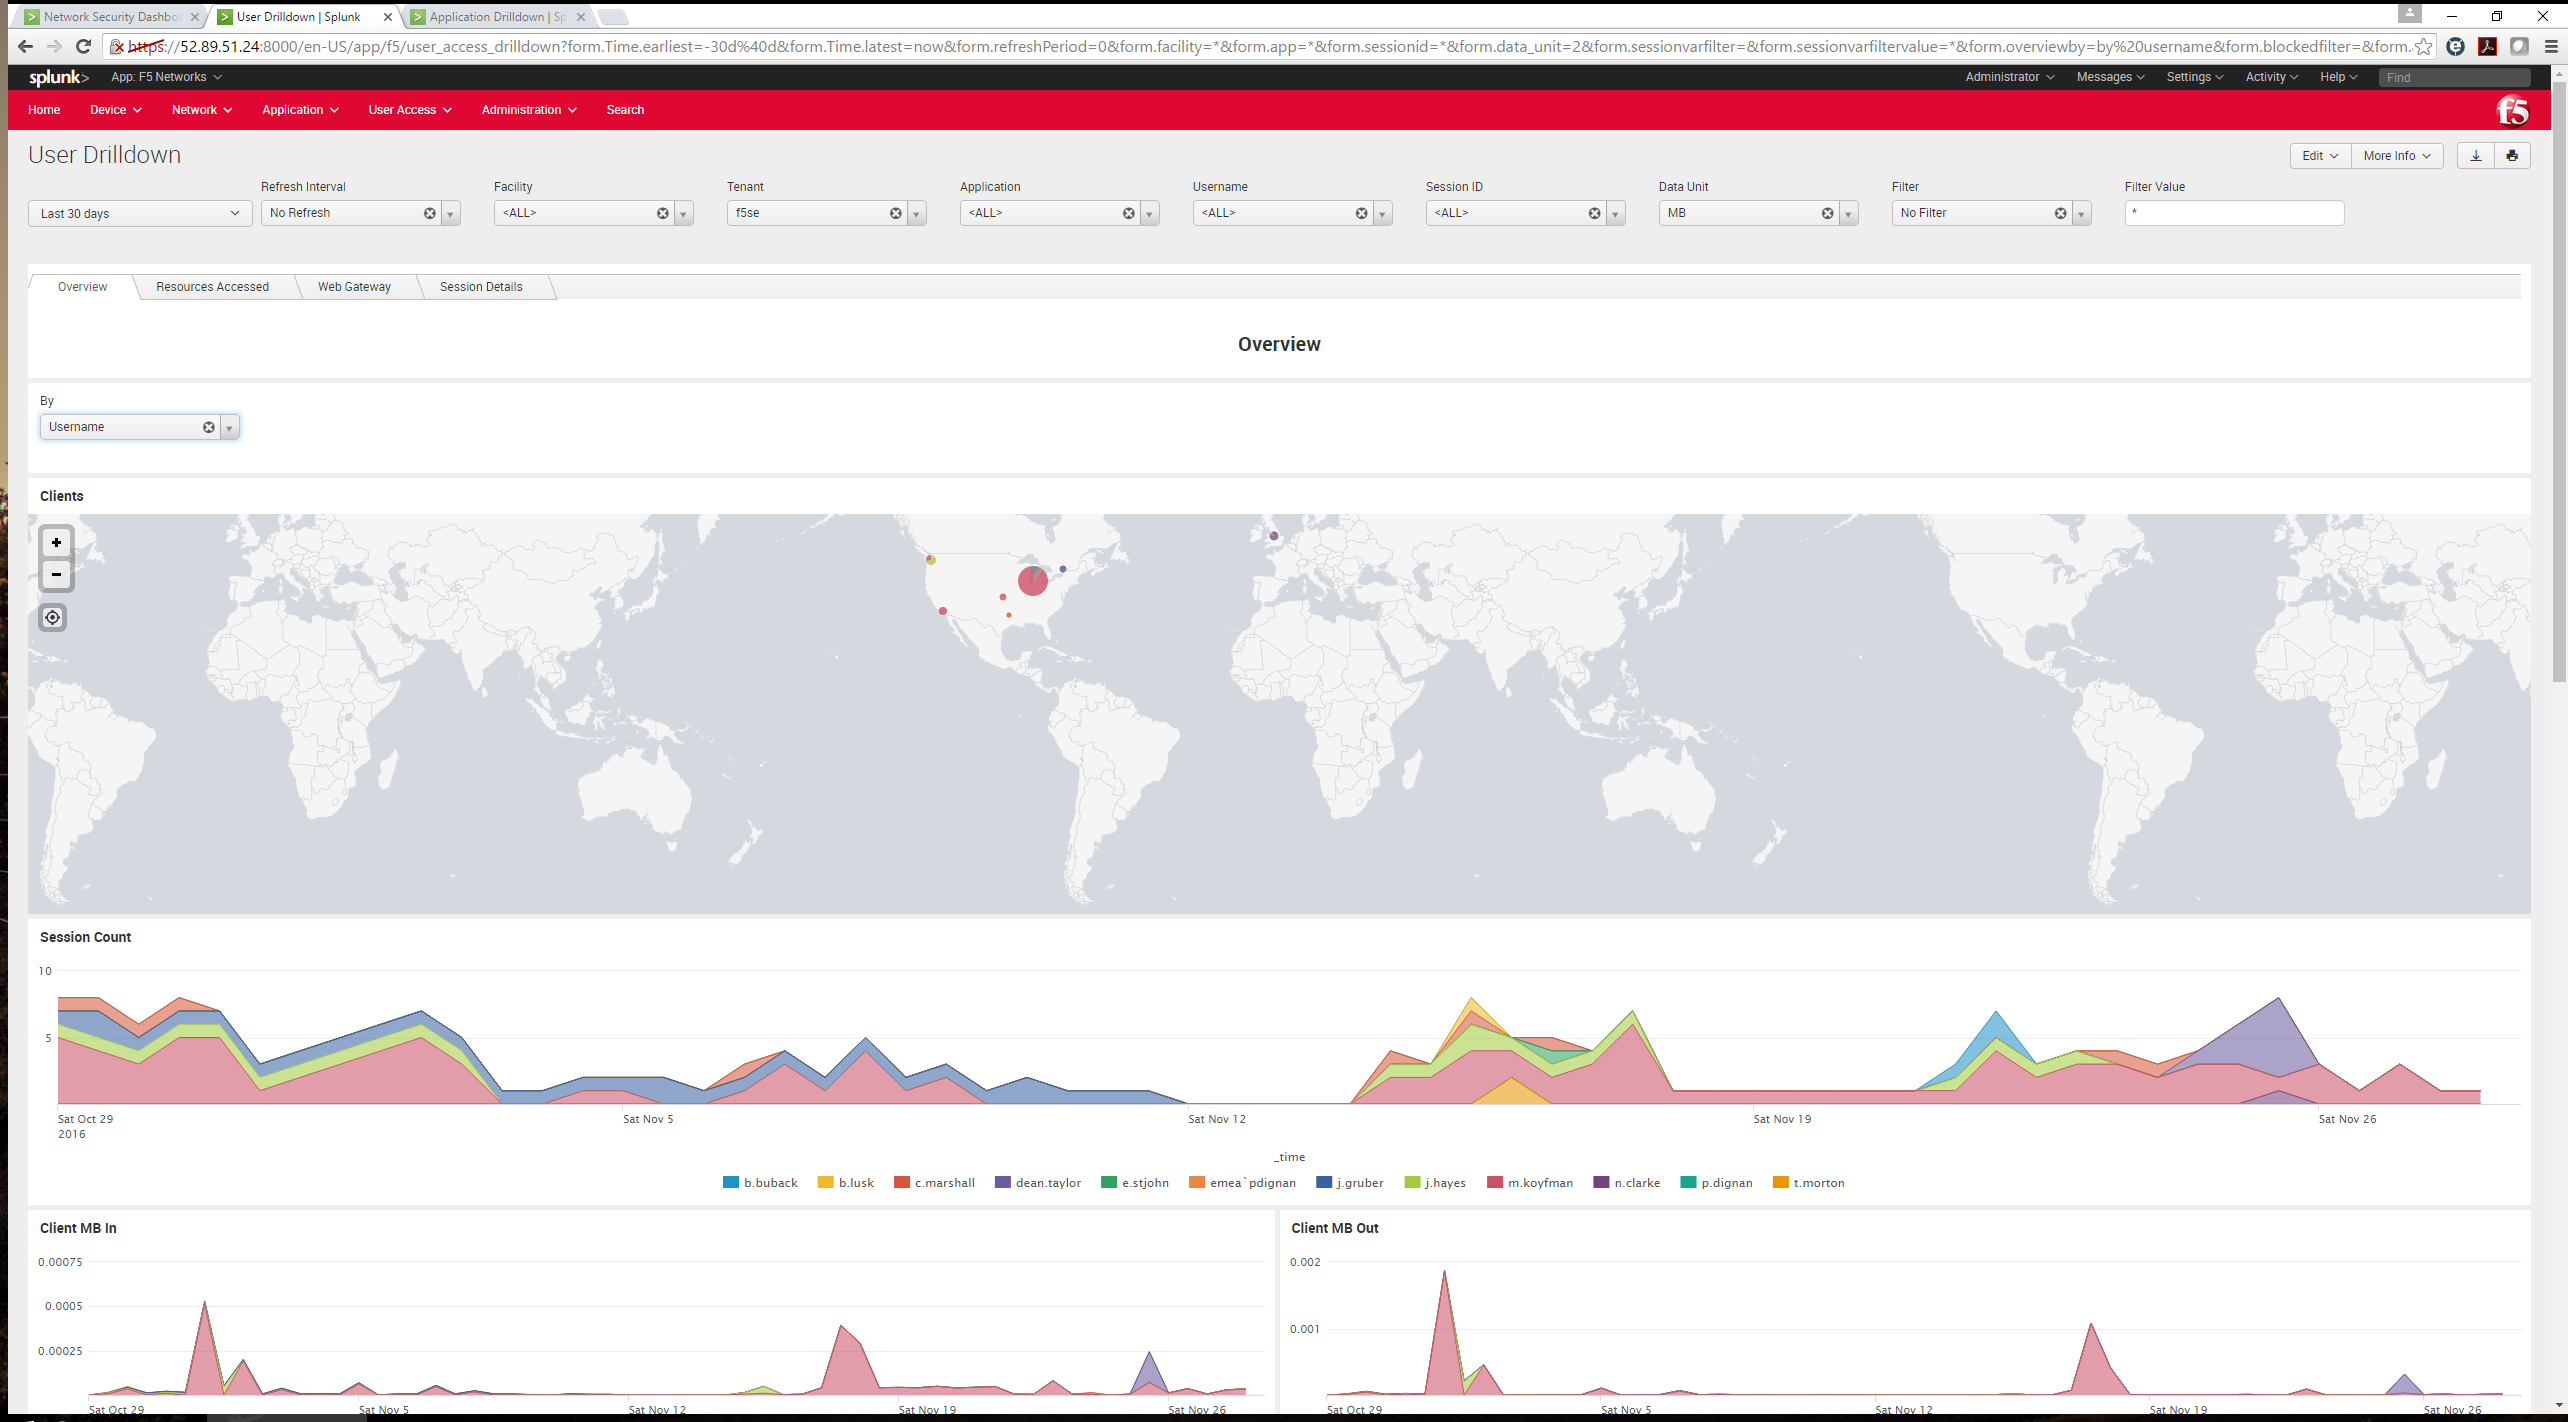 F5 Networks - Analytics (New) | Splunkbase